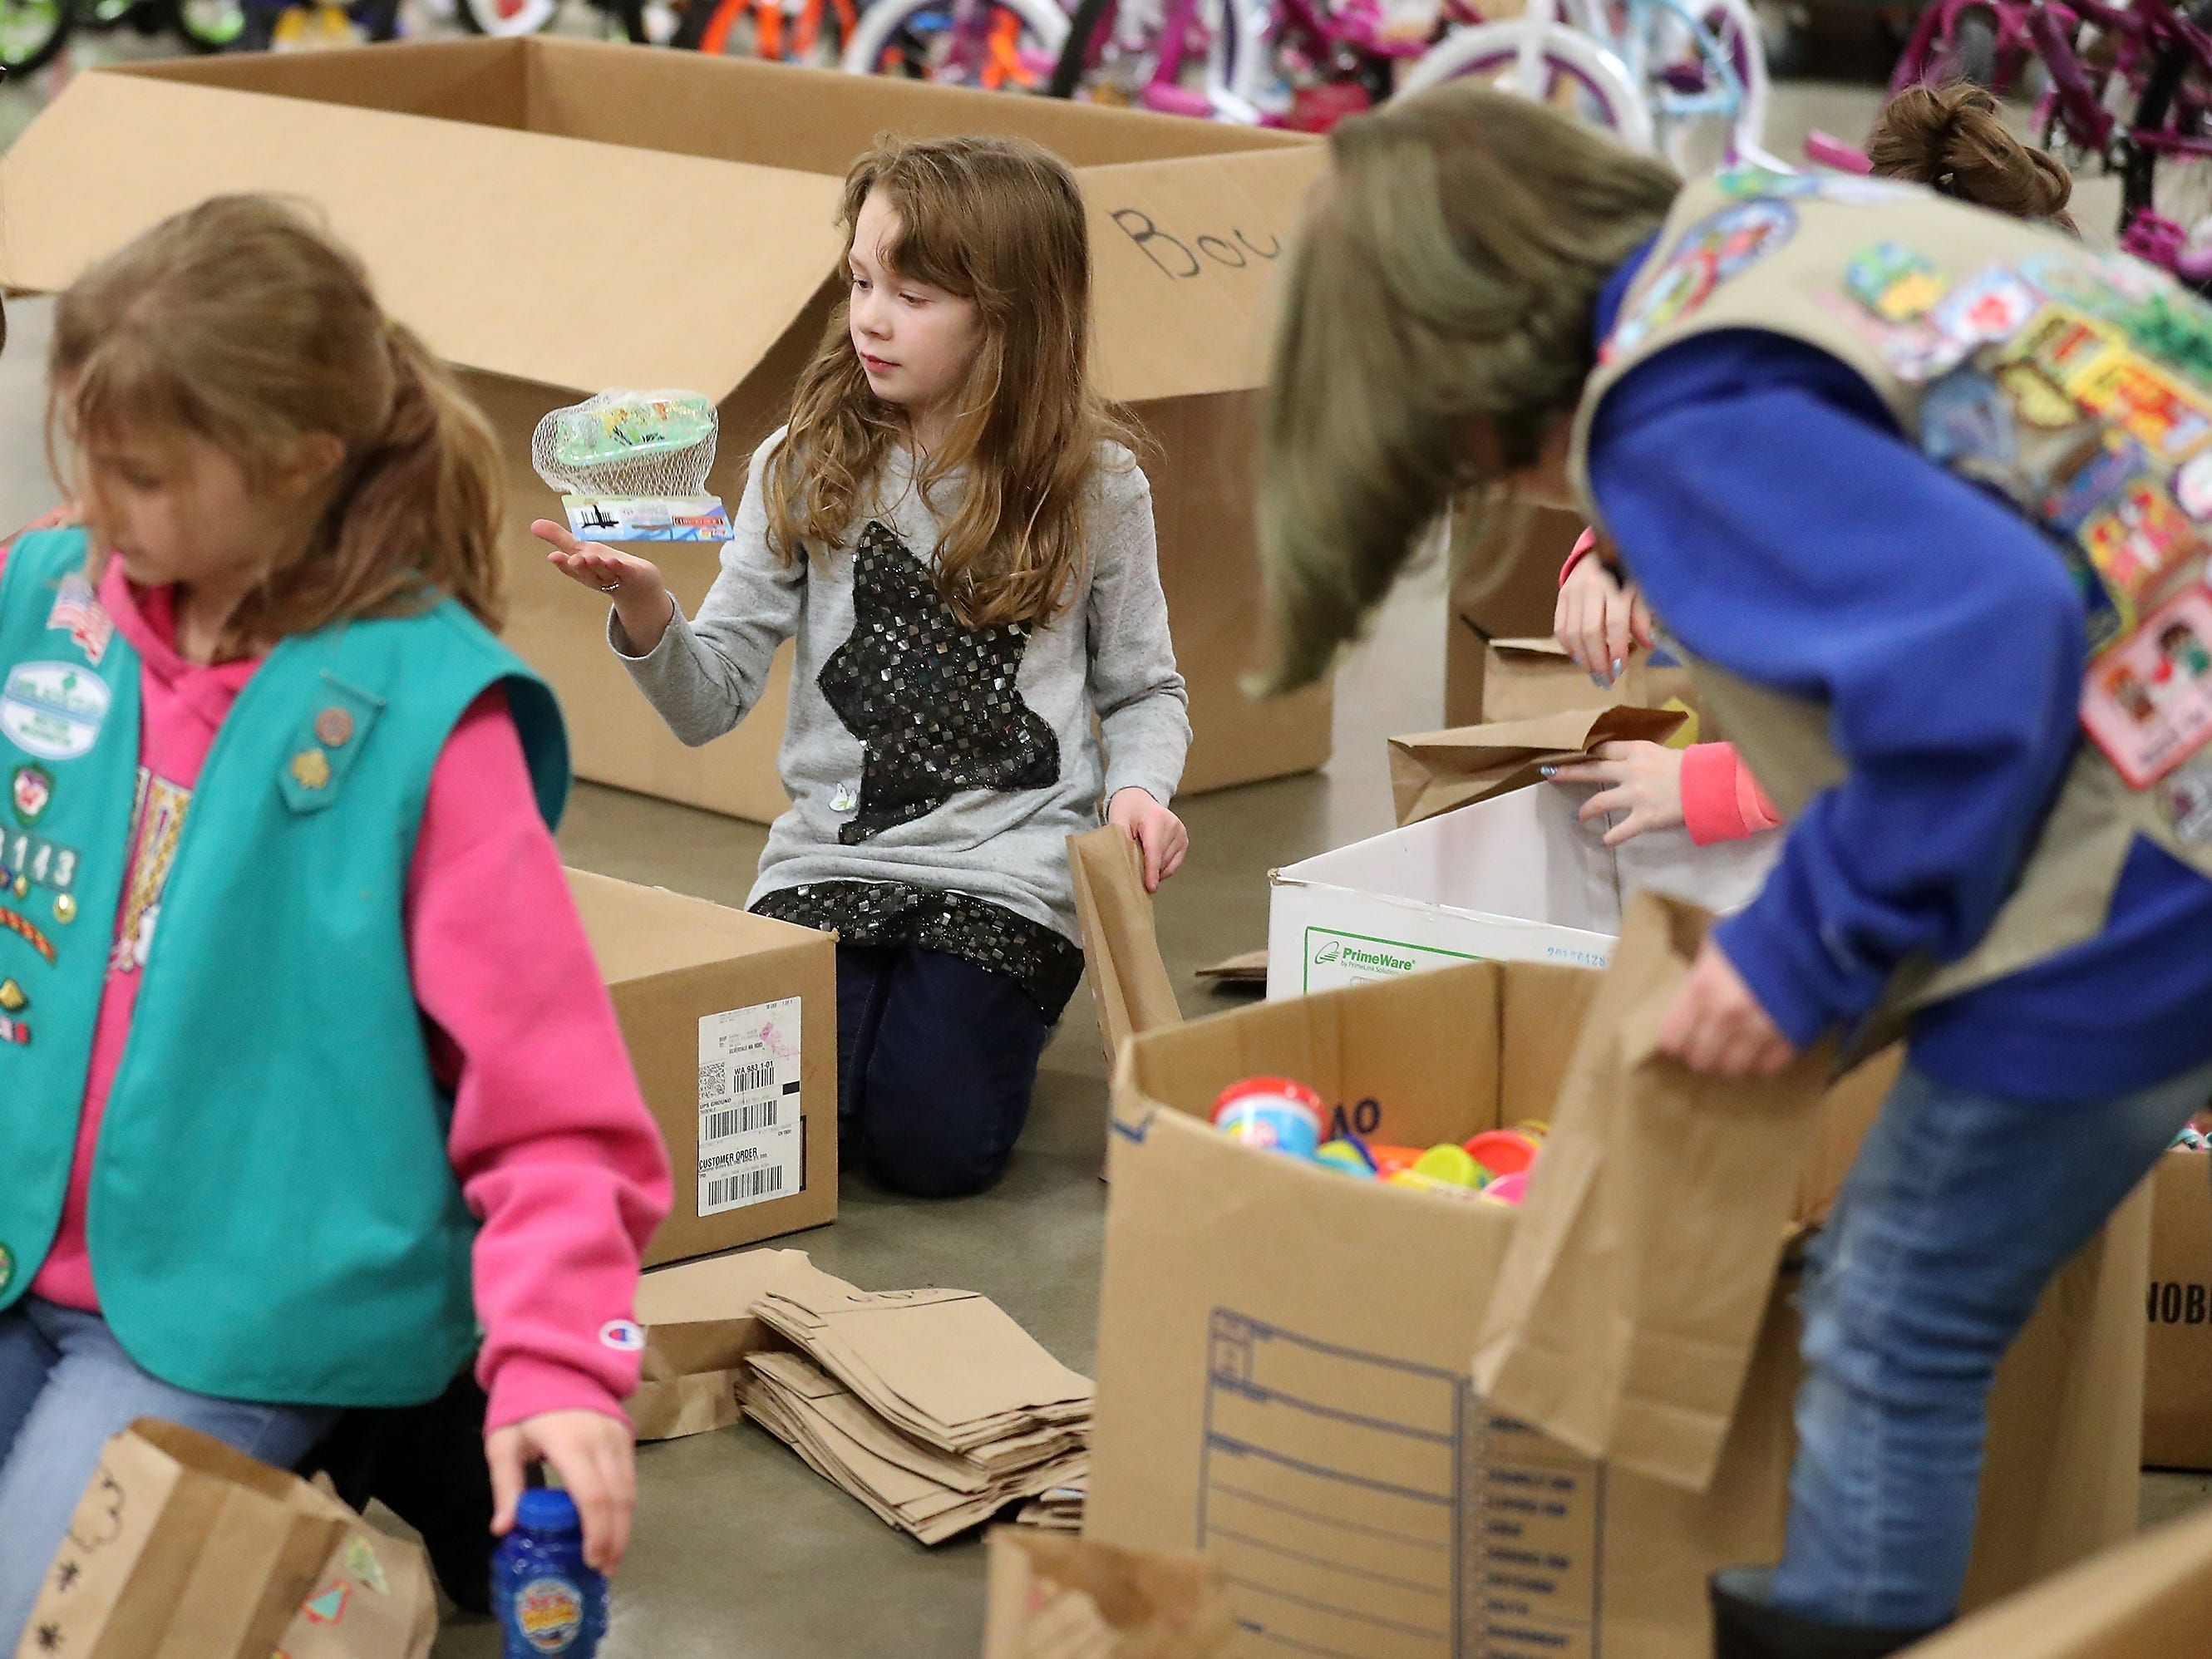 Lily Cogill, 9, (center) and fellow young volunteers help put together stocking stuffer bags to be given out during the upcoming Toys For Tots event in President's Hall at the Kitsap County Fairgrounds on Wednesday, December 12, 2018.